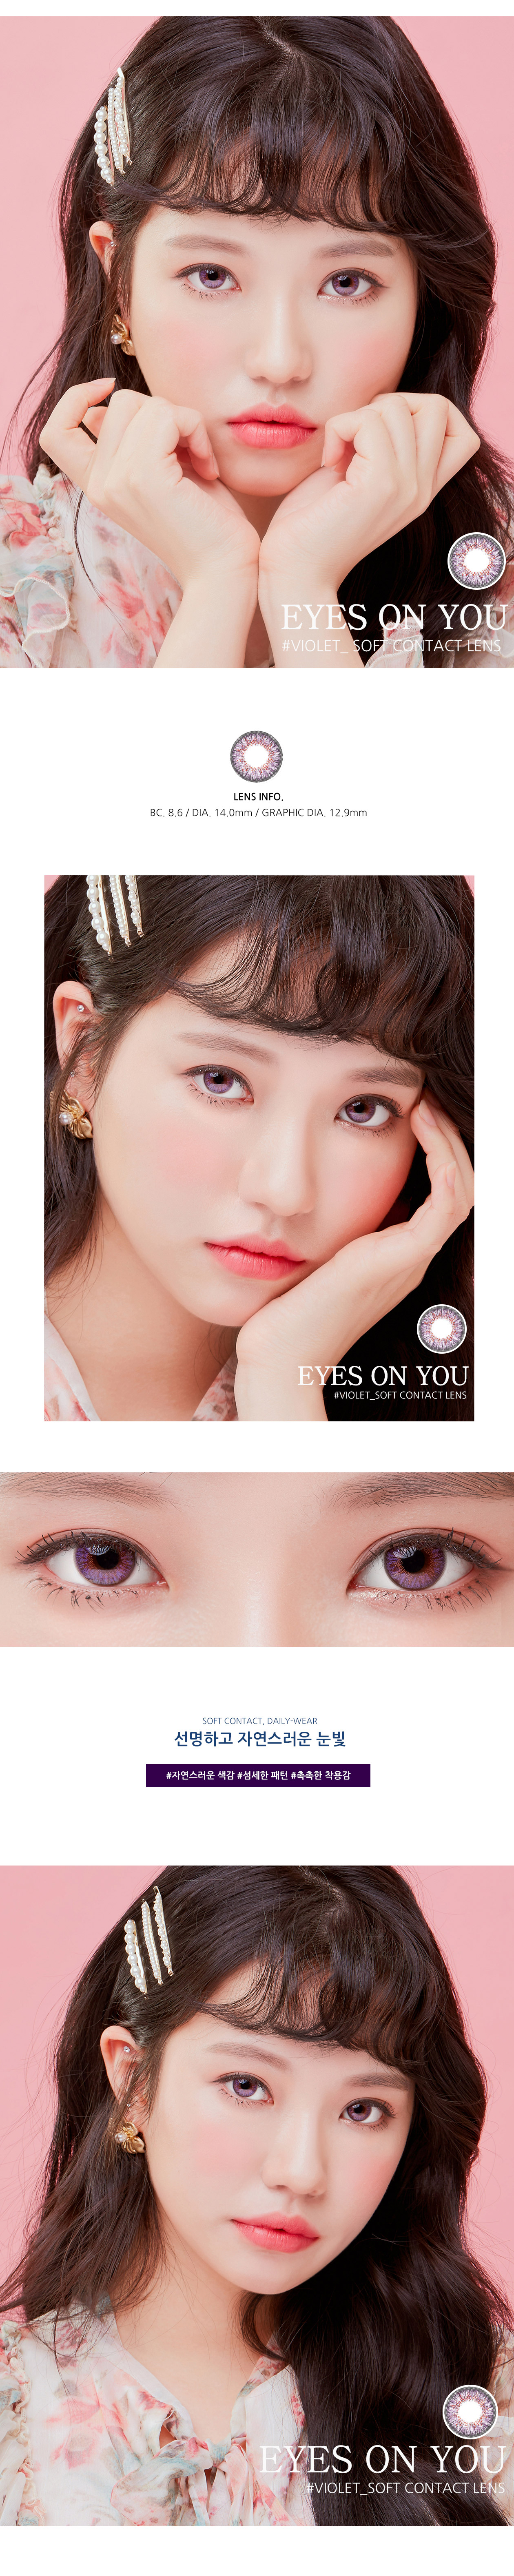 monthly-eyes-on-you-violet-circle-lenses1.jpg